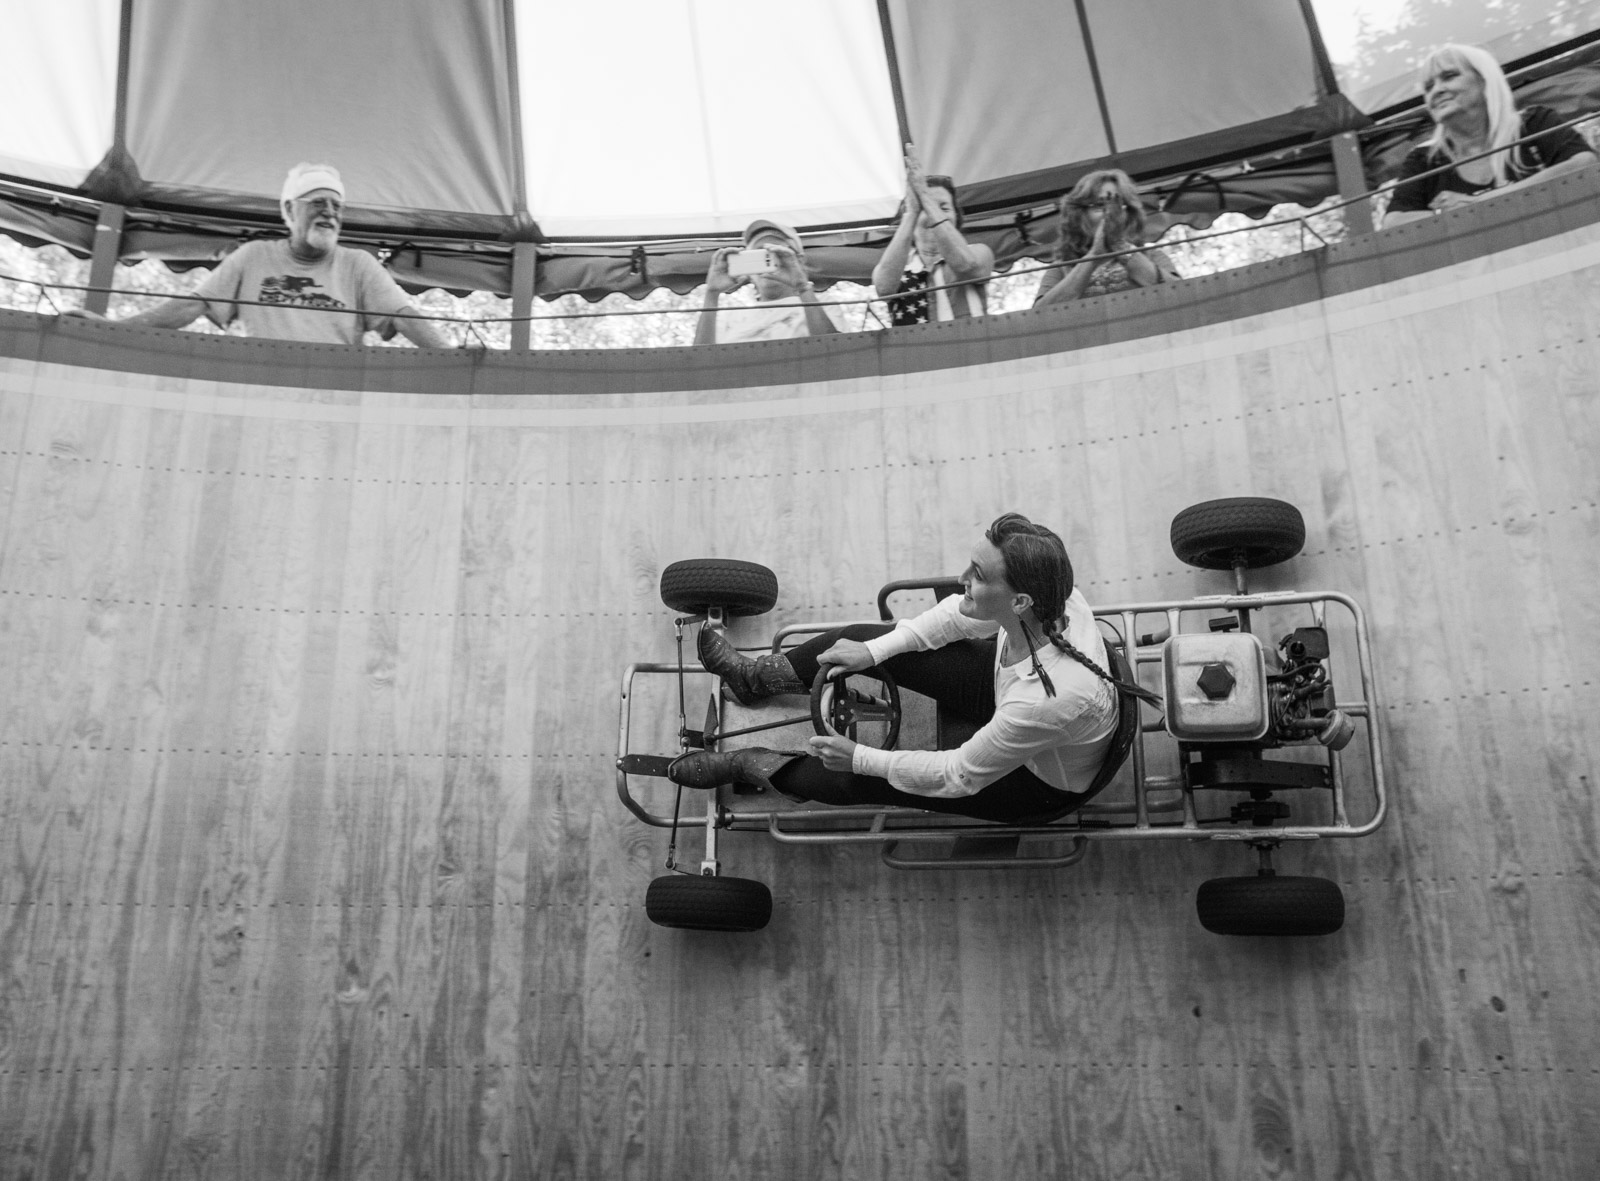 Samantha Stardust puts some rubber on the walls, taking the Wild Wheels racing go kart up for a spin.